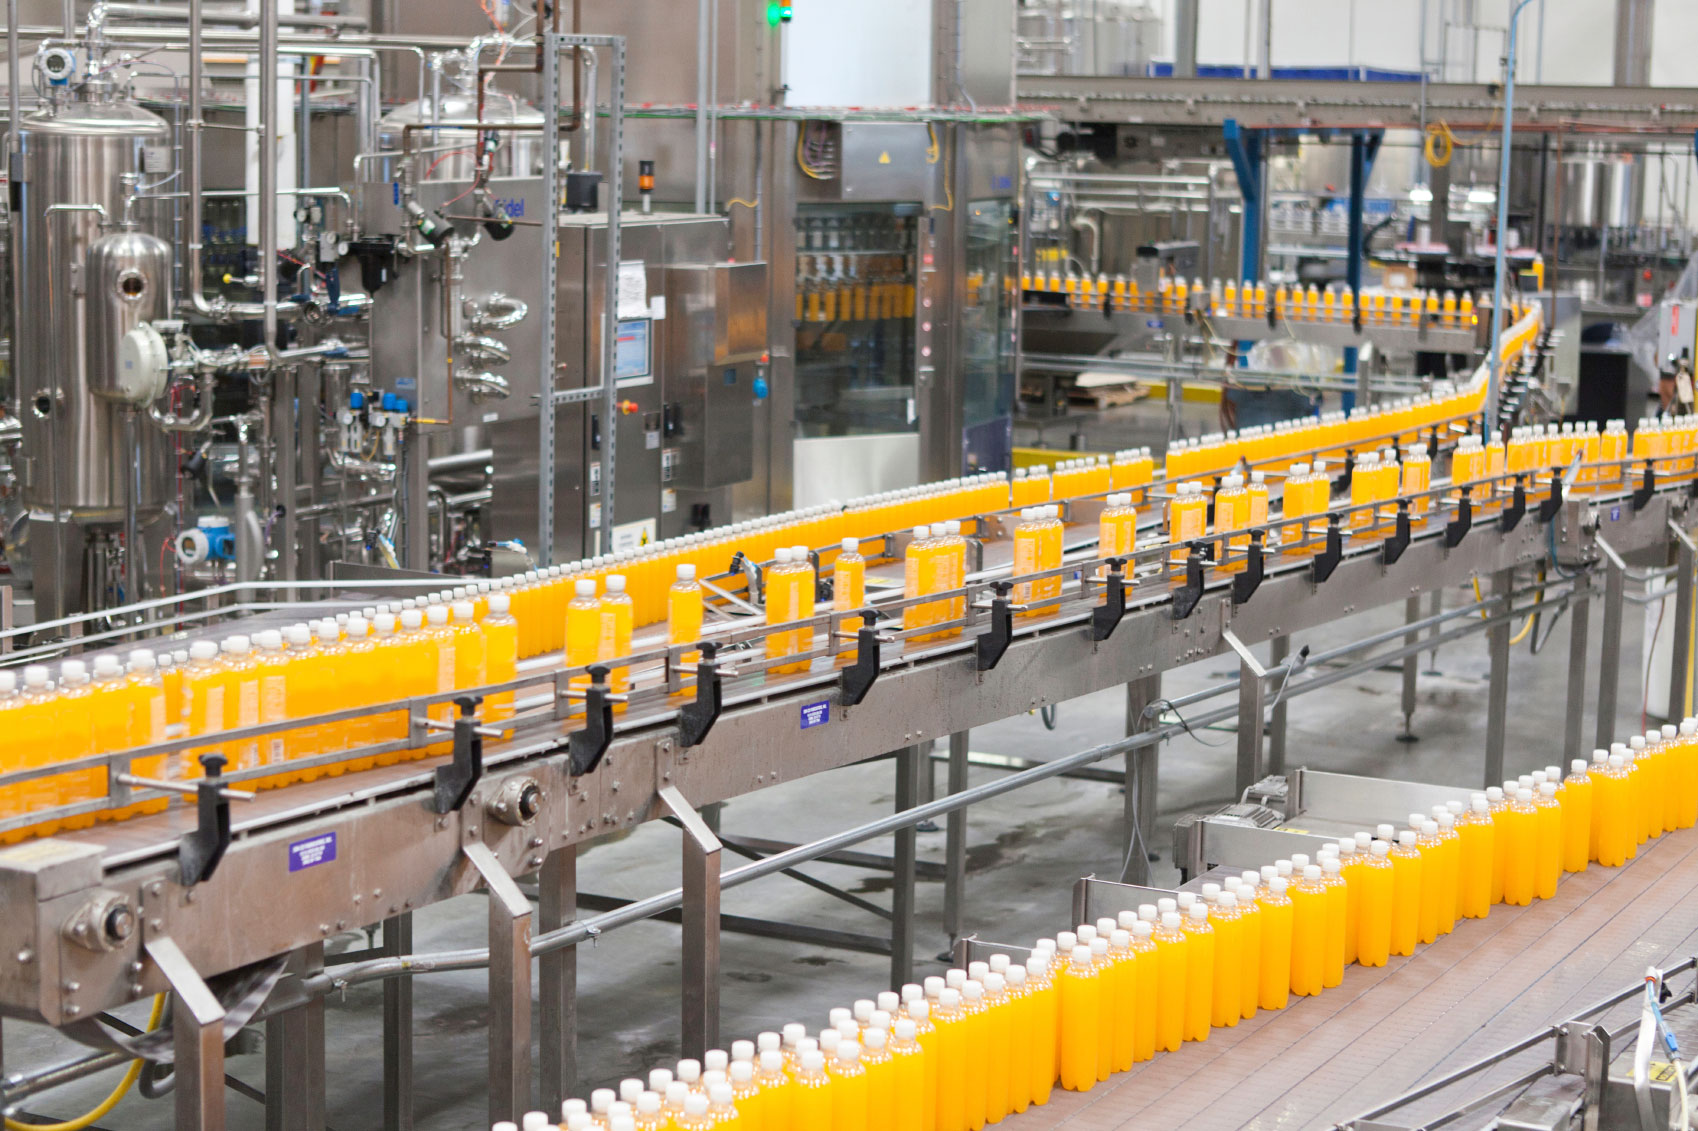 the food and beverage processing industry essay The industry report package food and beverage processing machine market in america to 2019 market size, development, and forecasts offers the most up-todate market data on the actual market situation, and future outlook for food and beverage processing machines in different american countries.